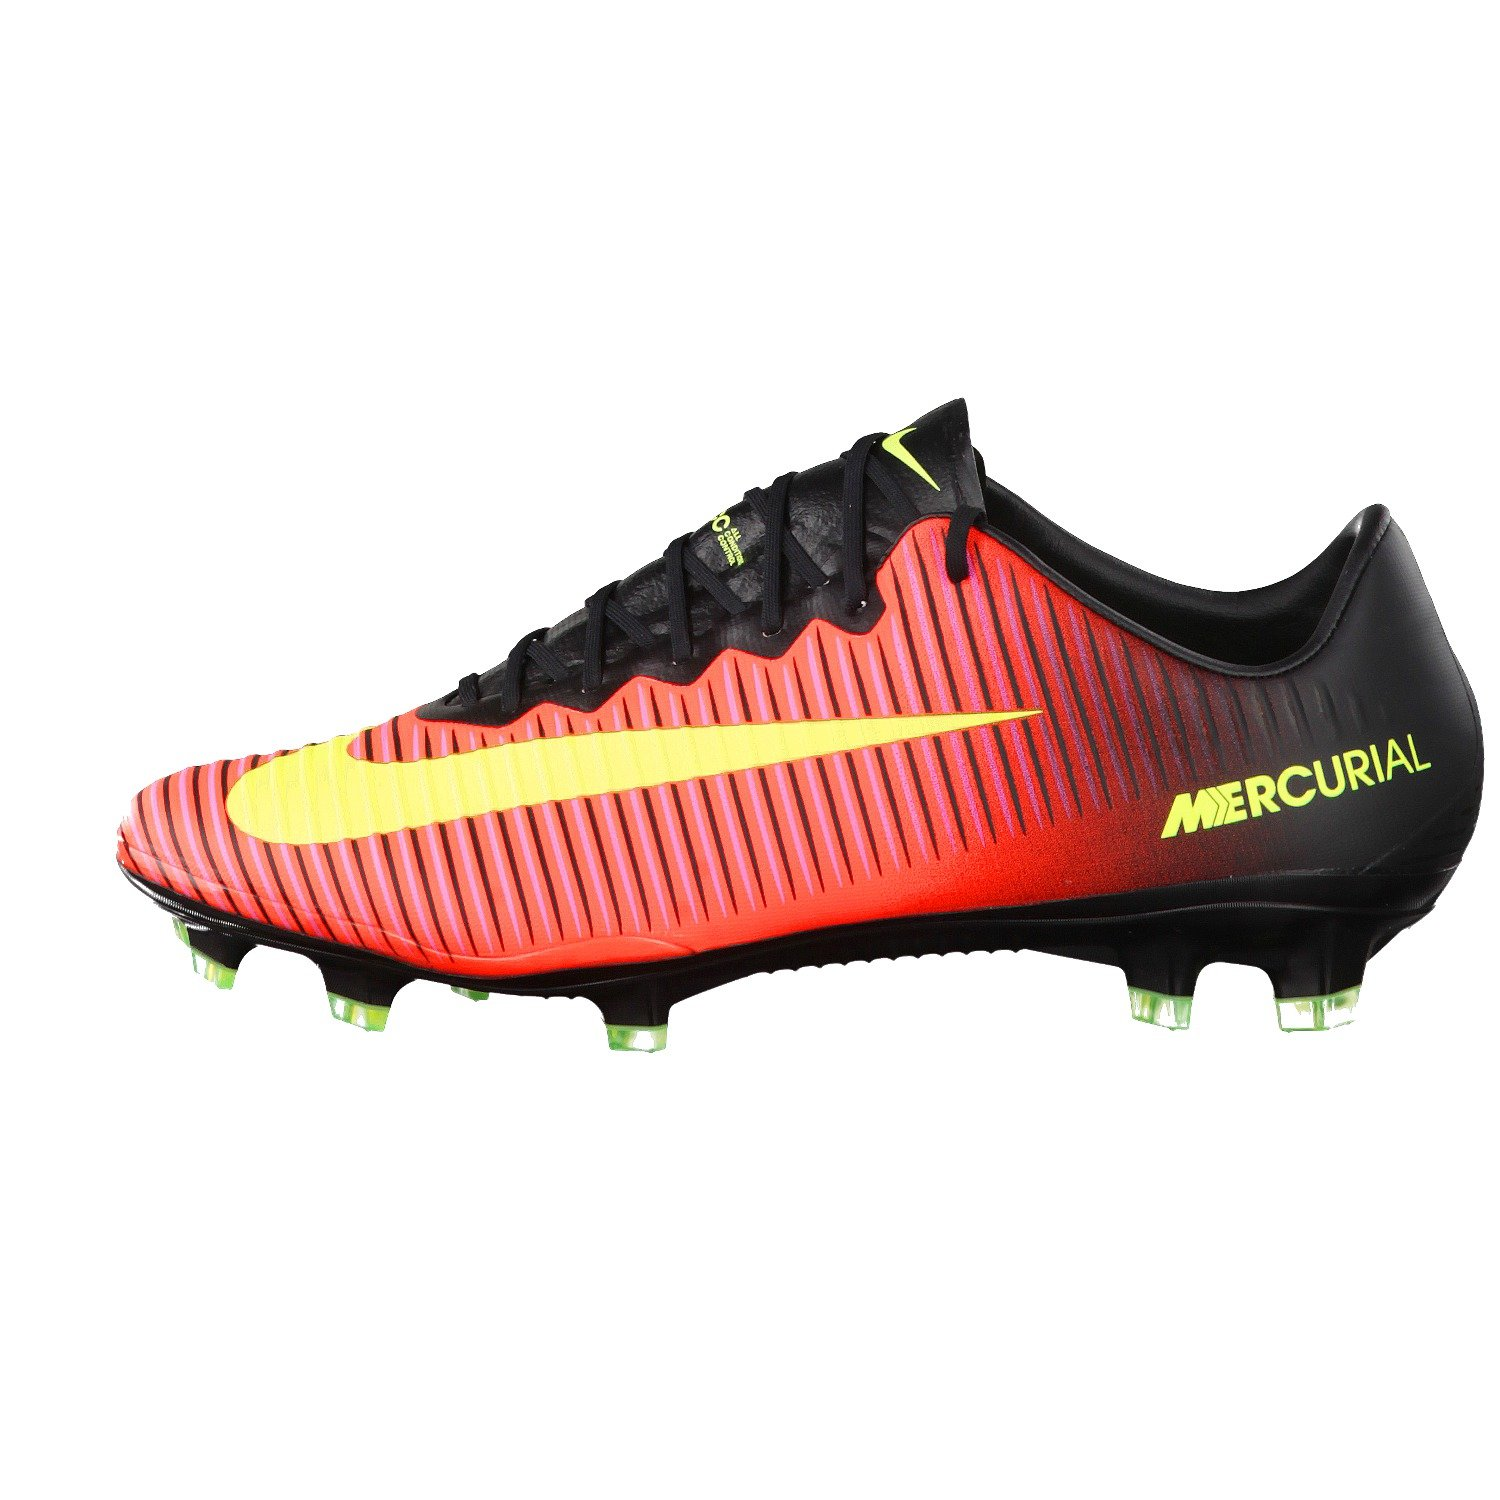 95f165b09de Nike Mercurial Vapor XI FG Men s Firm-Ground Soccer Cleat (12 D(M) US)  Buy  Online at Low Prices in India - Amazon.in